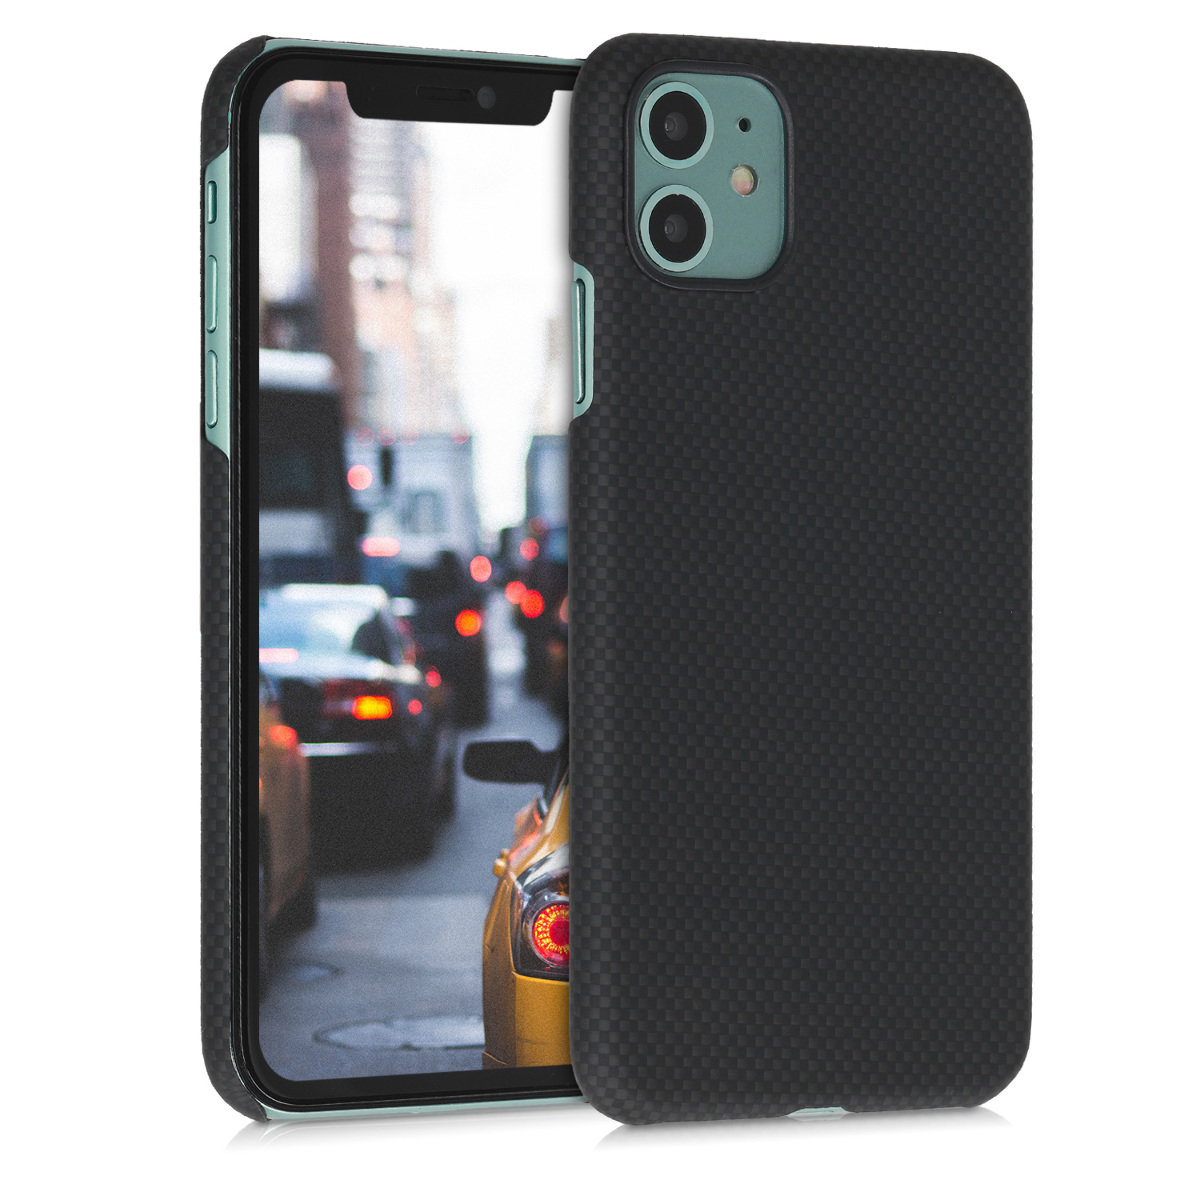 Kalibri Aramid Fiber Body - Σκληρή Θήκη Apple iPhone 11 - Black (49734.01)